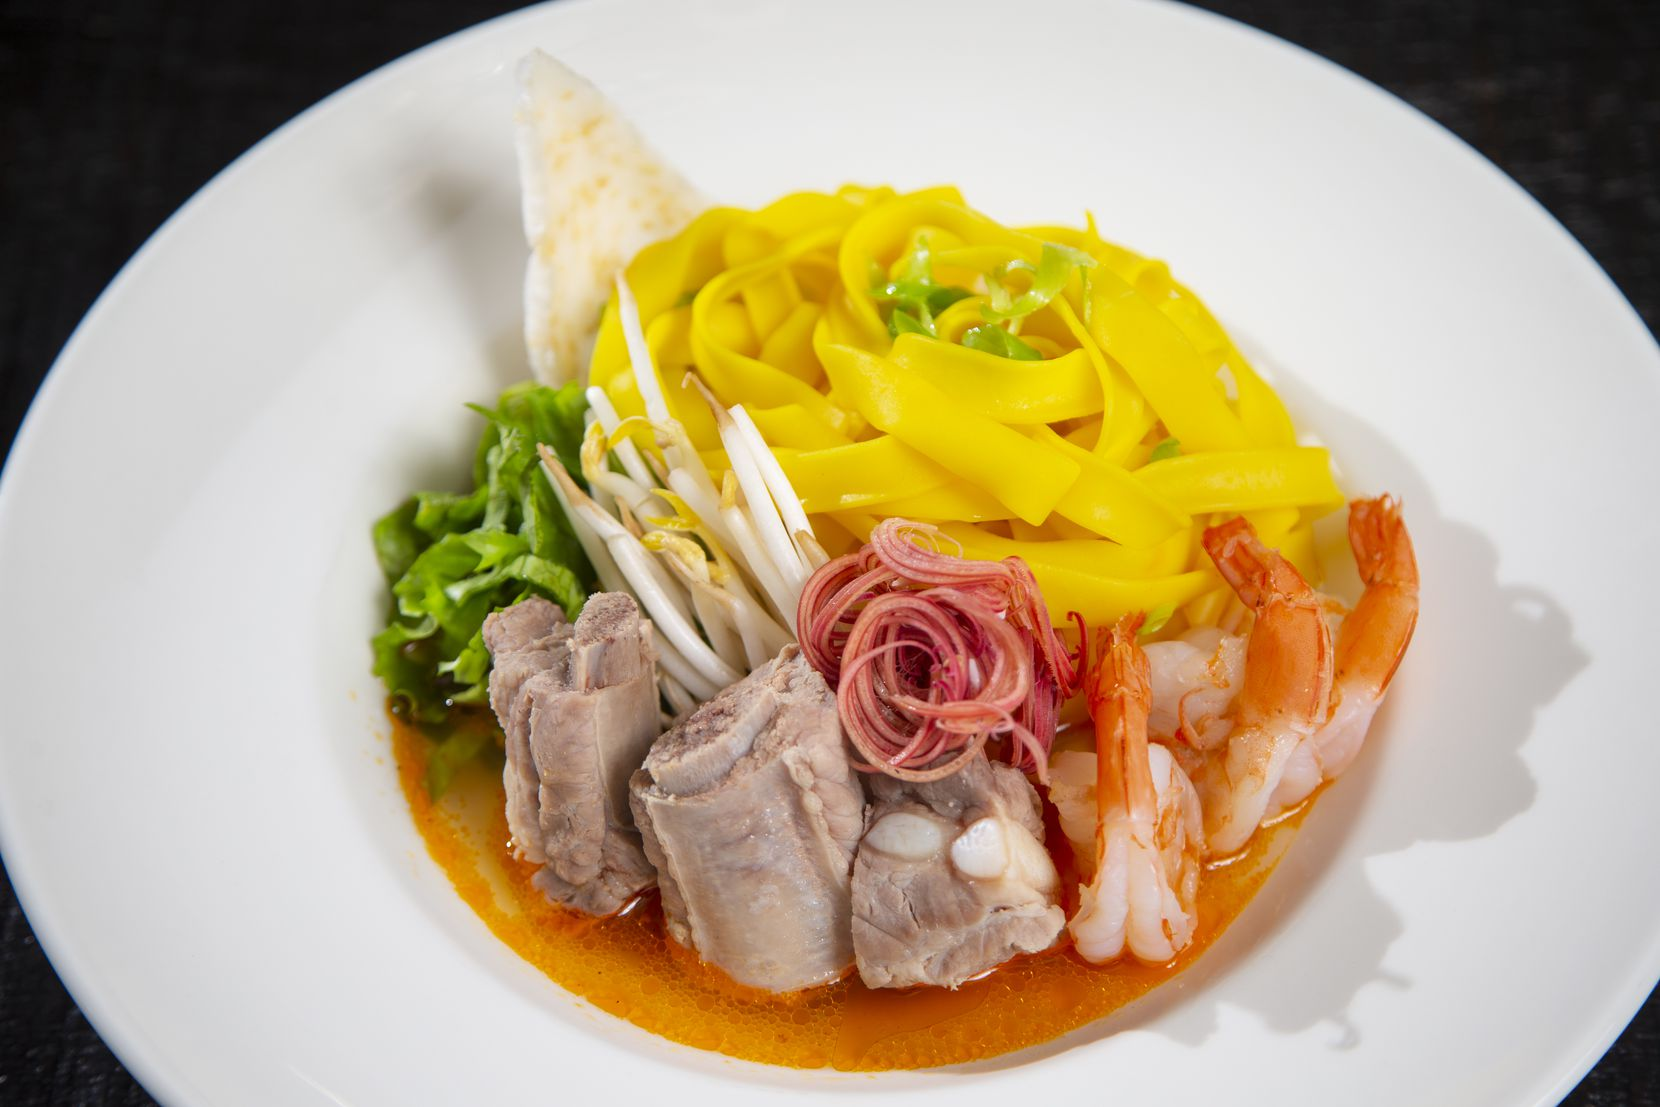 Mì Quảng is made with shrimp, pork ribs, turmeric rice noodles and served in a tomato broth with lettuce, banana blossom and bean sprouts.